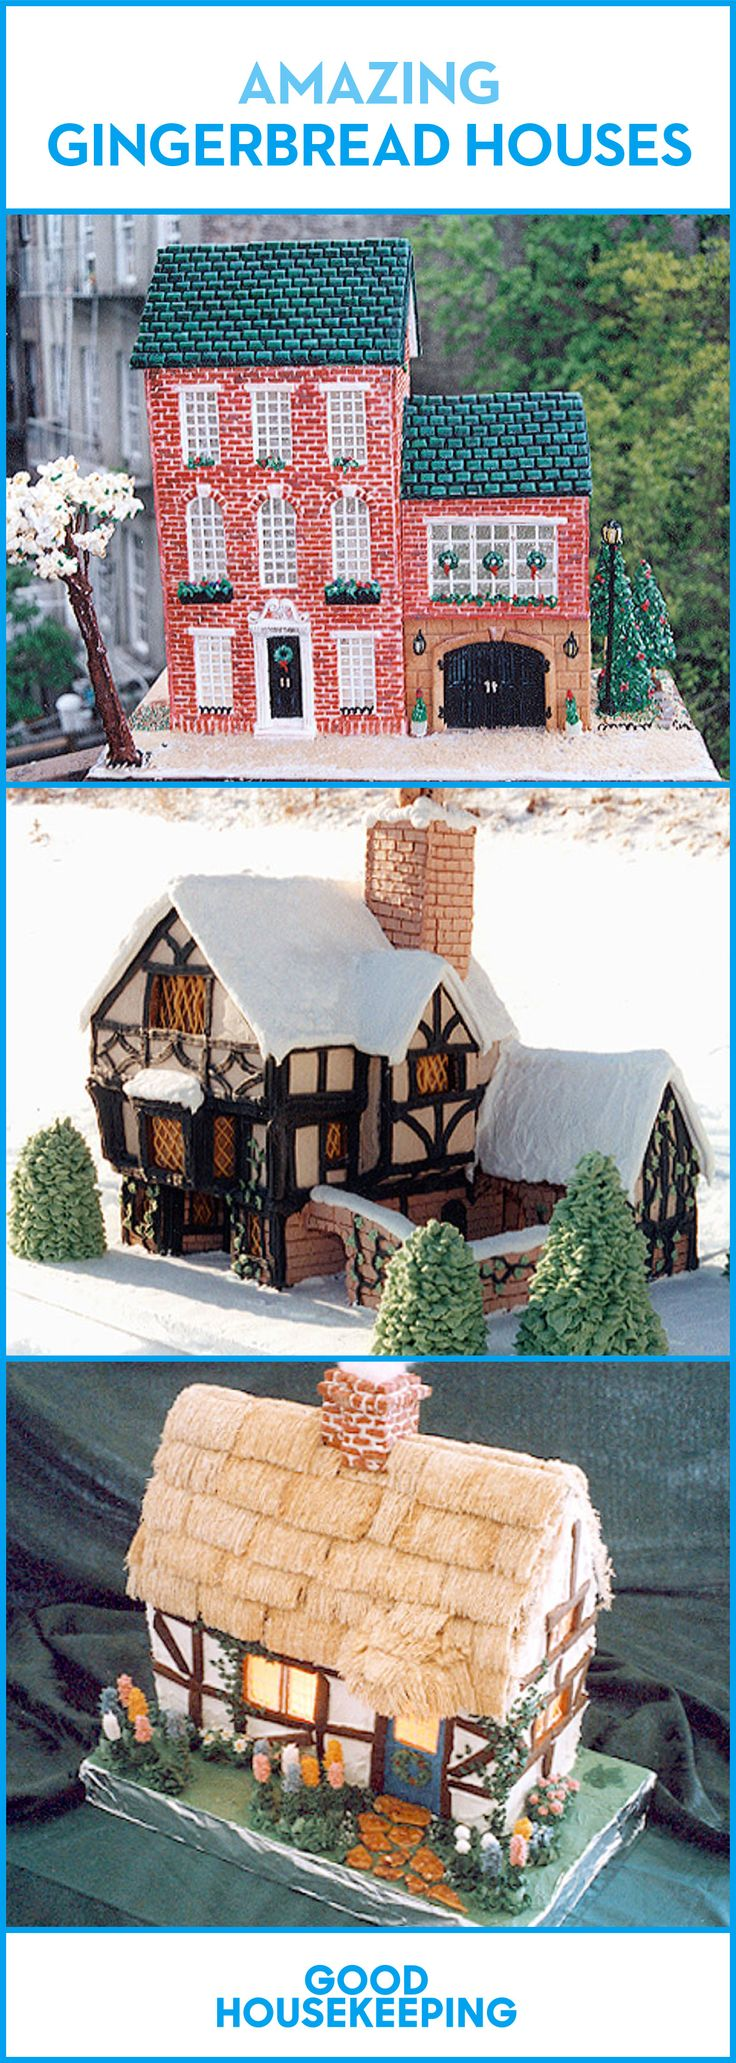 Save these gingerbread house designs for next Christmas!